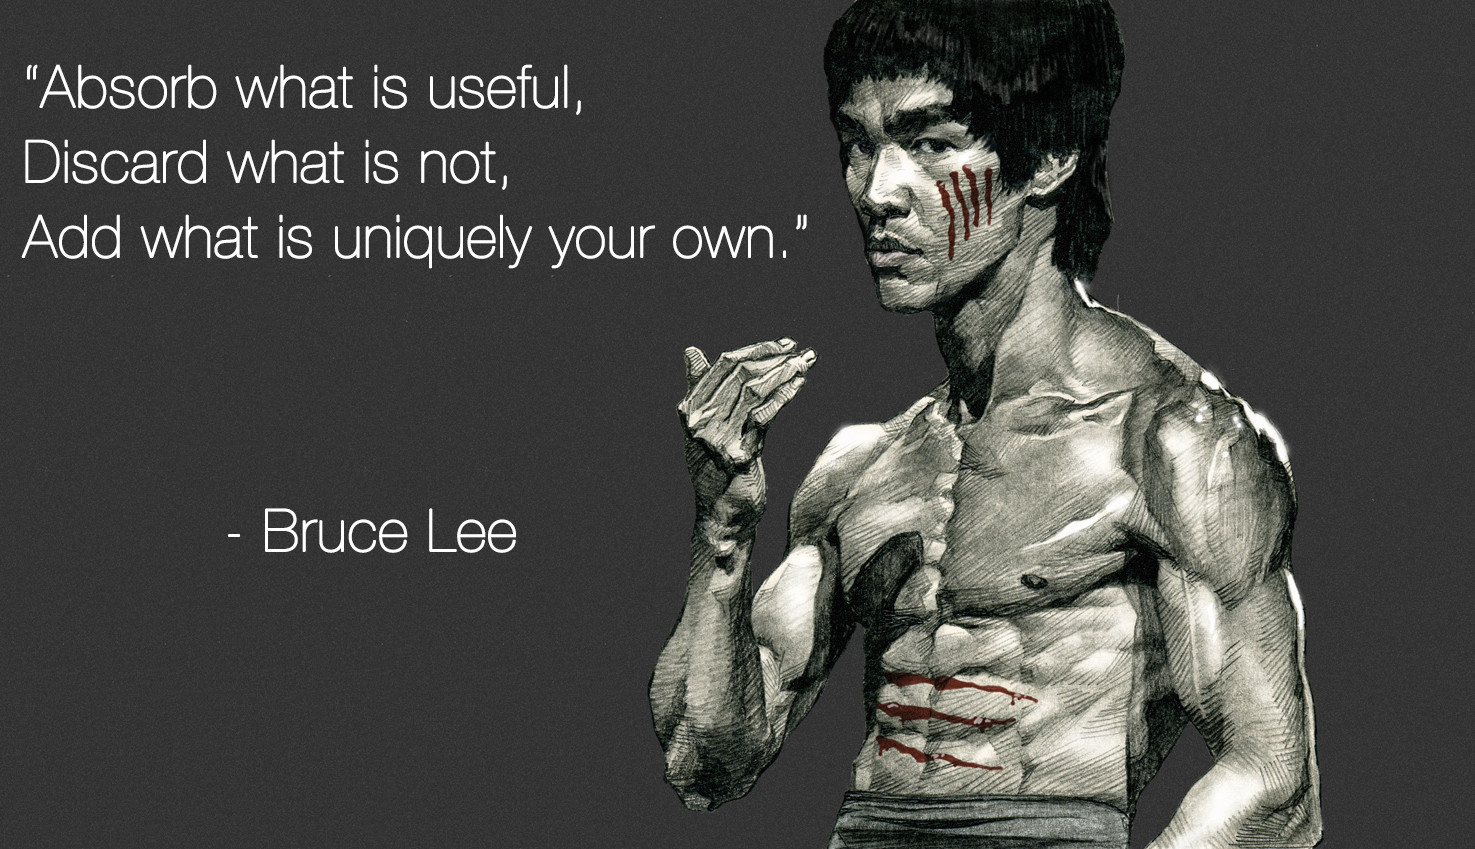 Absorb-what-is-useful-reject-what-is-useless-add-what-is-specifically-your-own-Bruce-Lee